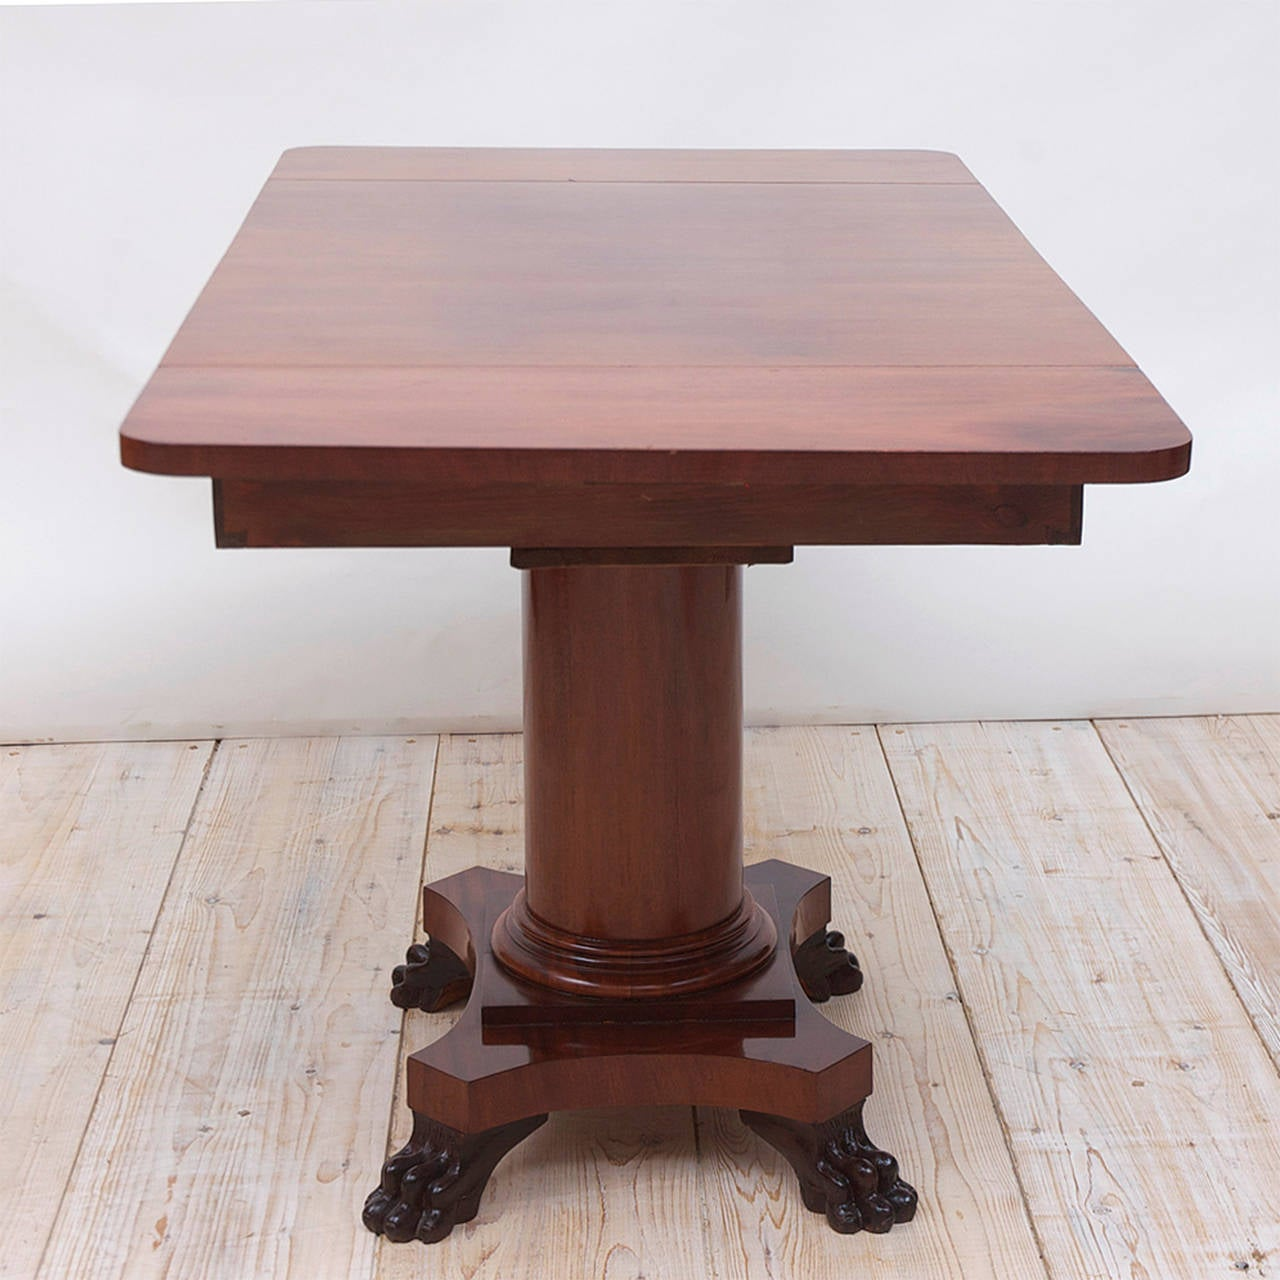 Biedermeier Writing Desk or Sofa Table in Mahogany, Sweden, circa 1840 For Sale 2